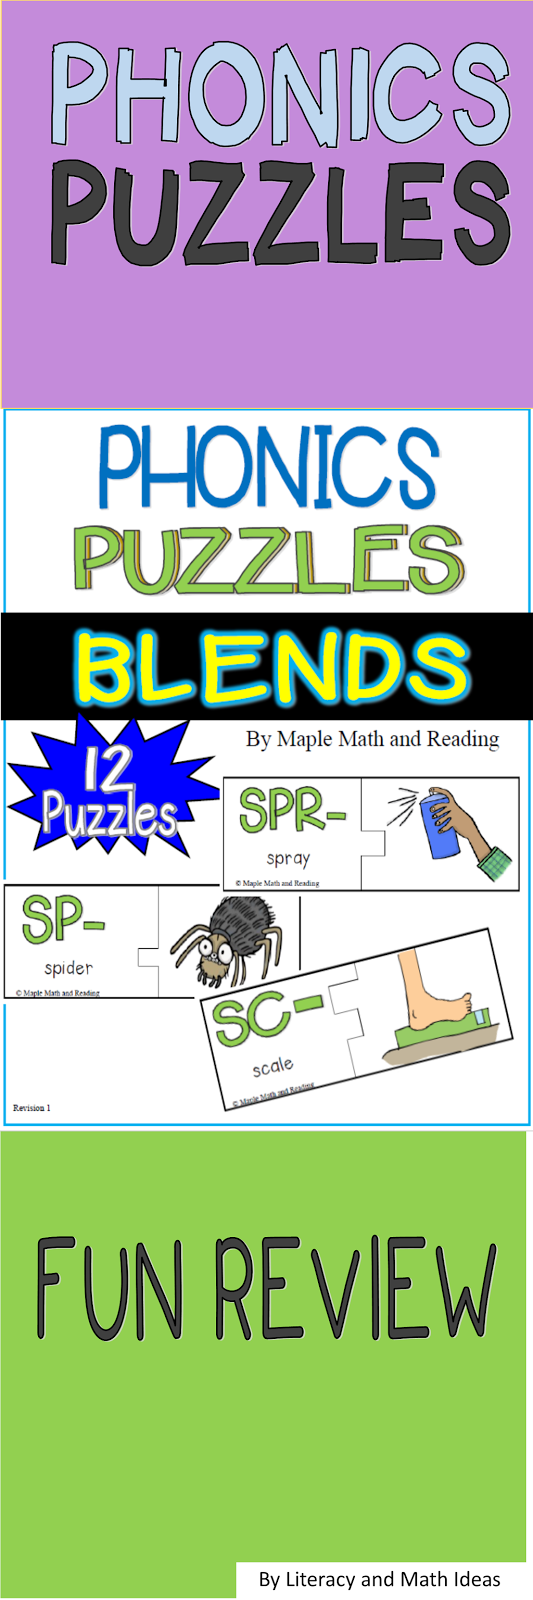 Review CCV Phonics with puzzles. 12 self-checking puzzles are ...